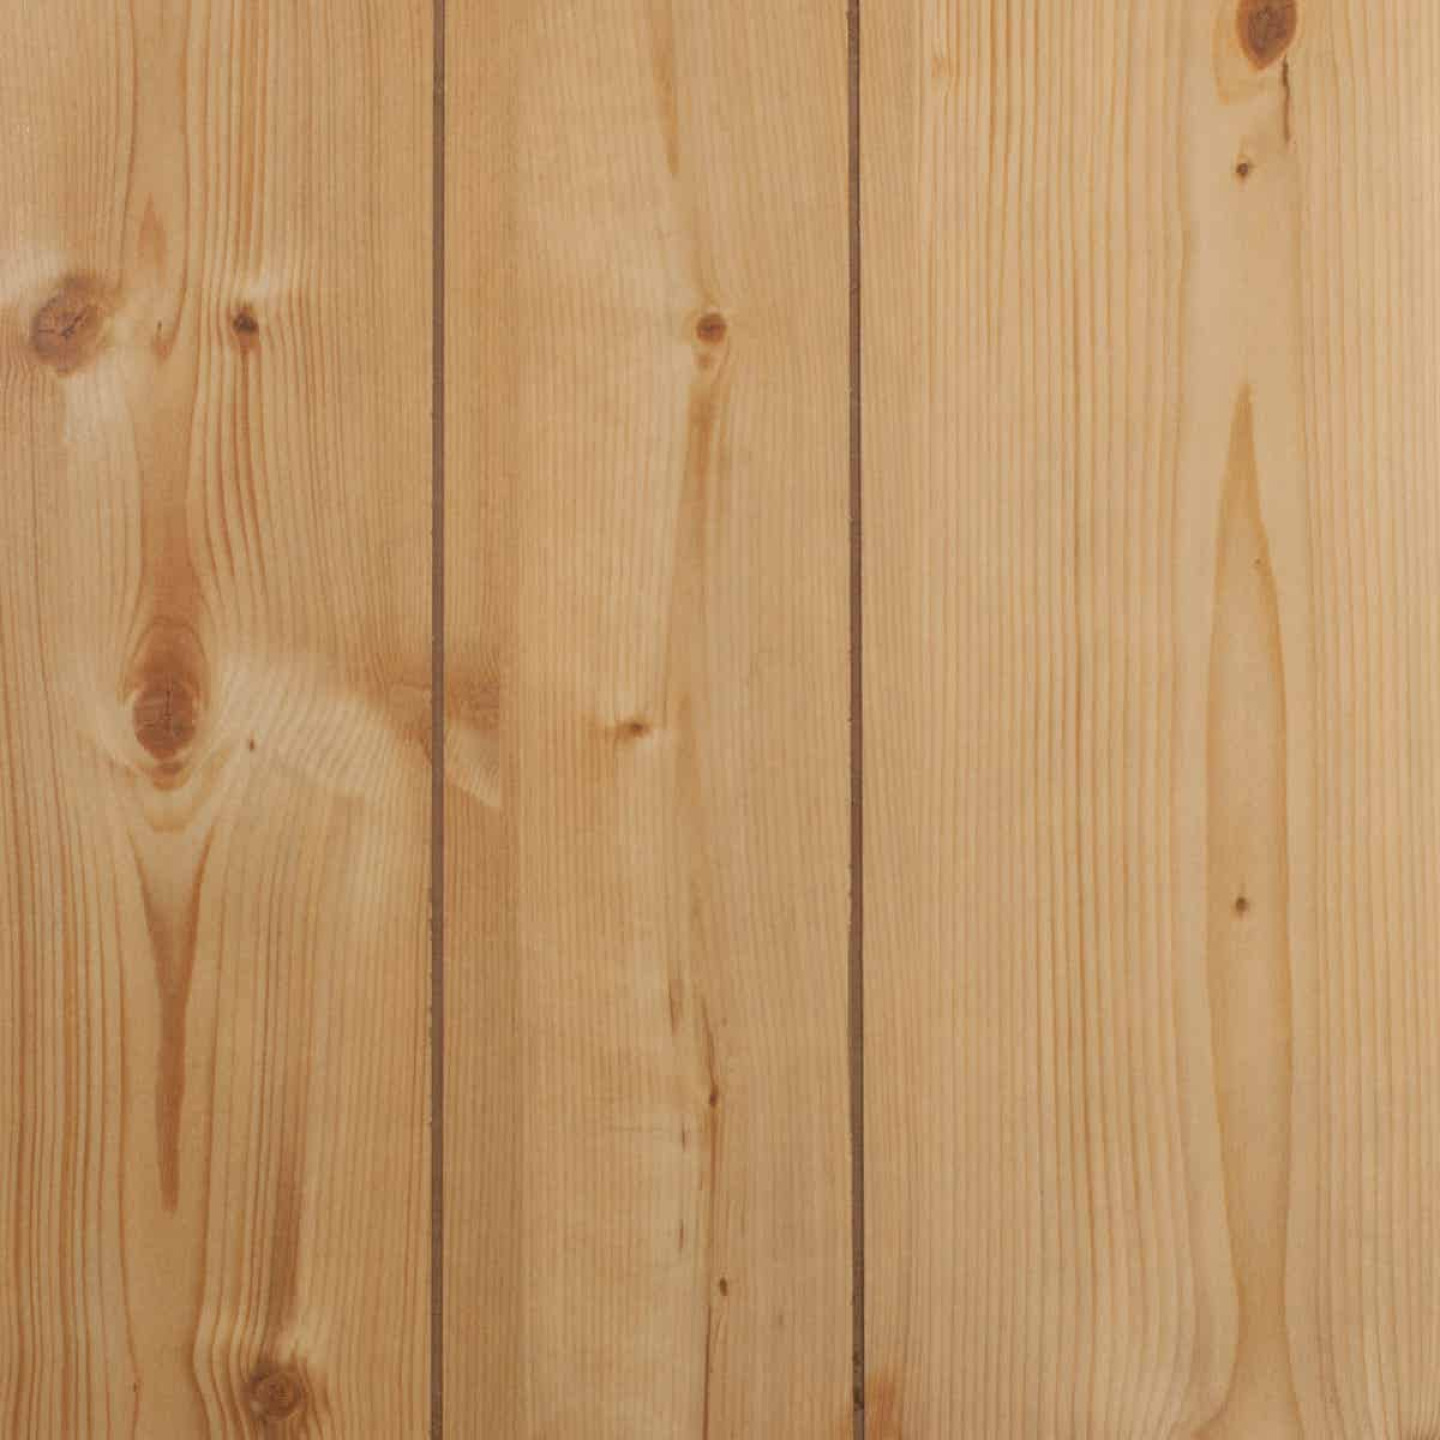 Global Product Sourcing 4 Ft. x 8 Ft. x 1/8 In. Plantation Pine Random Groove Profile Wall Paneling Image 1